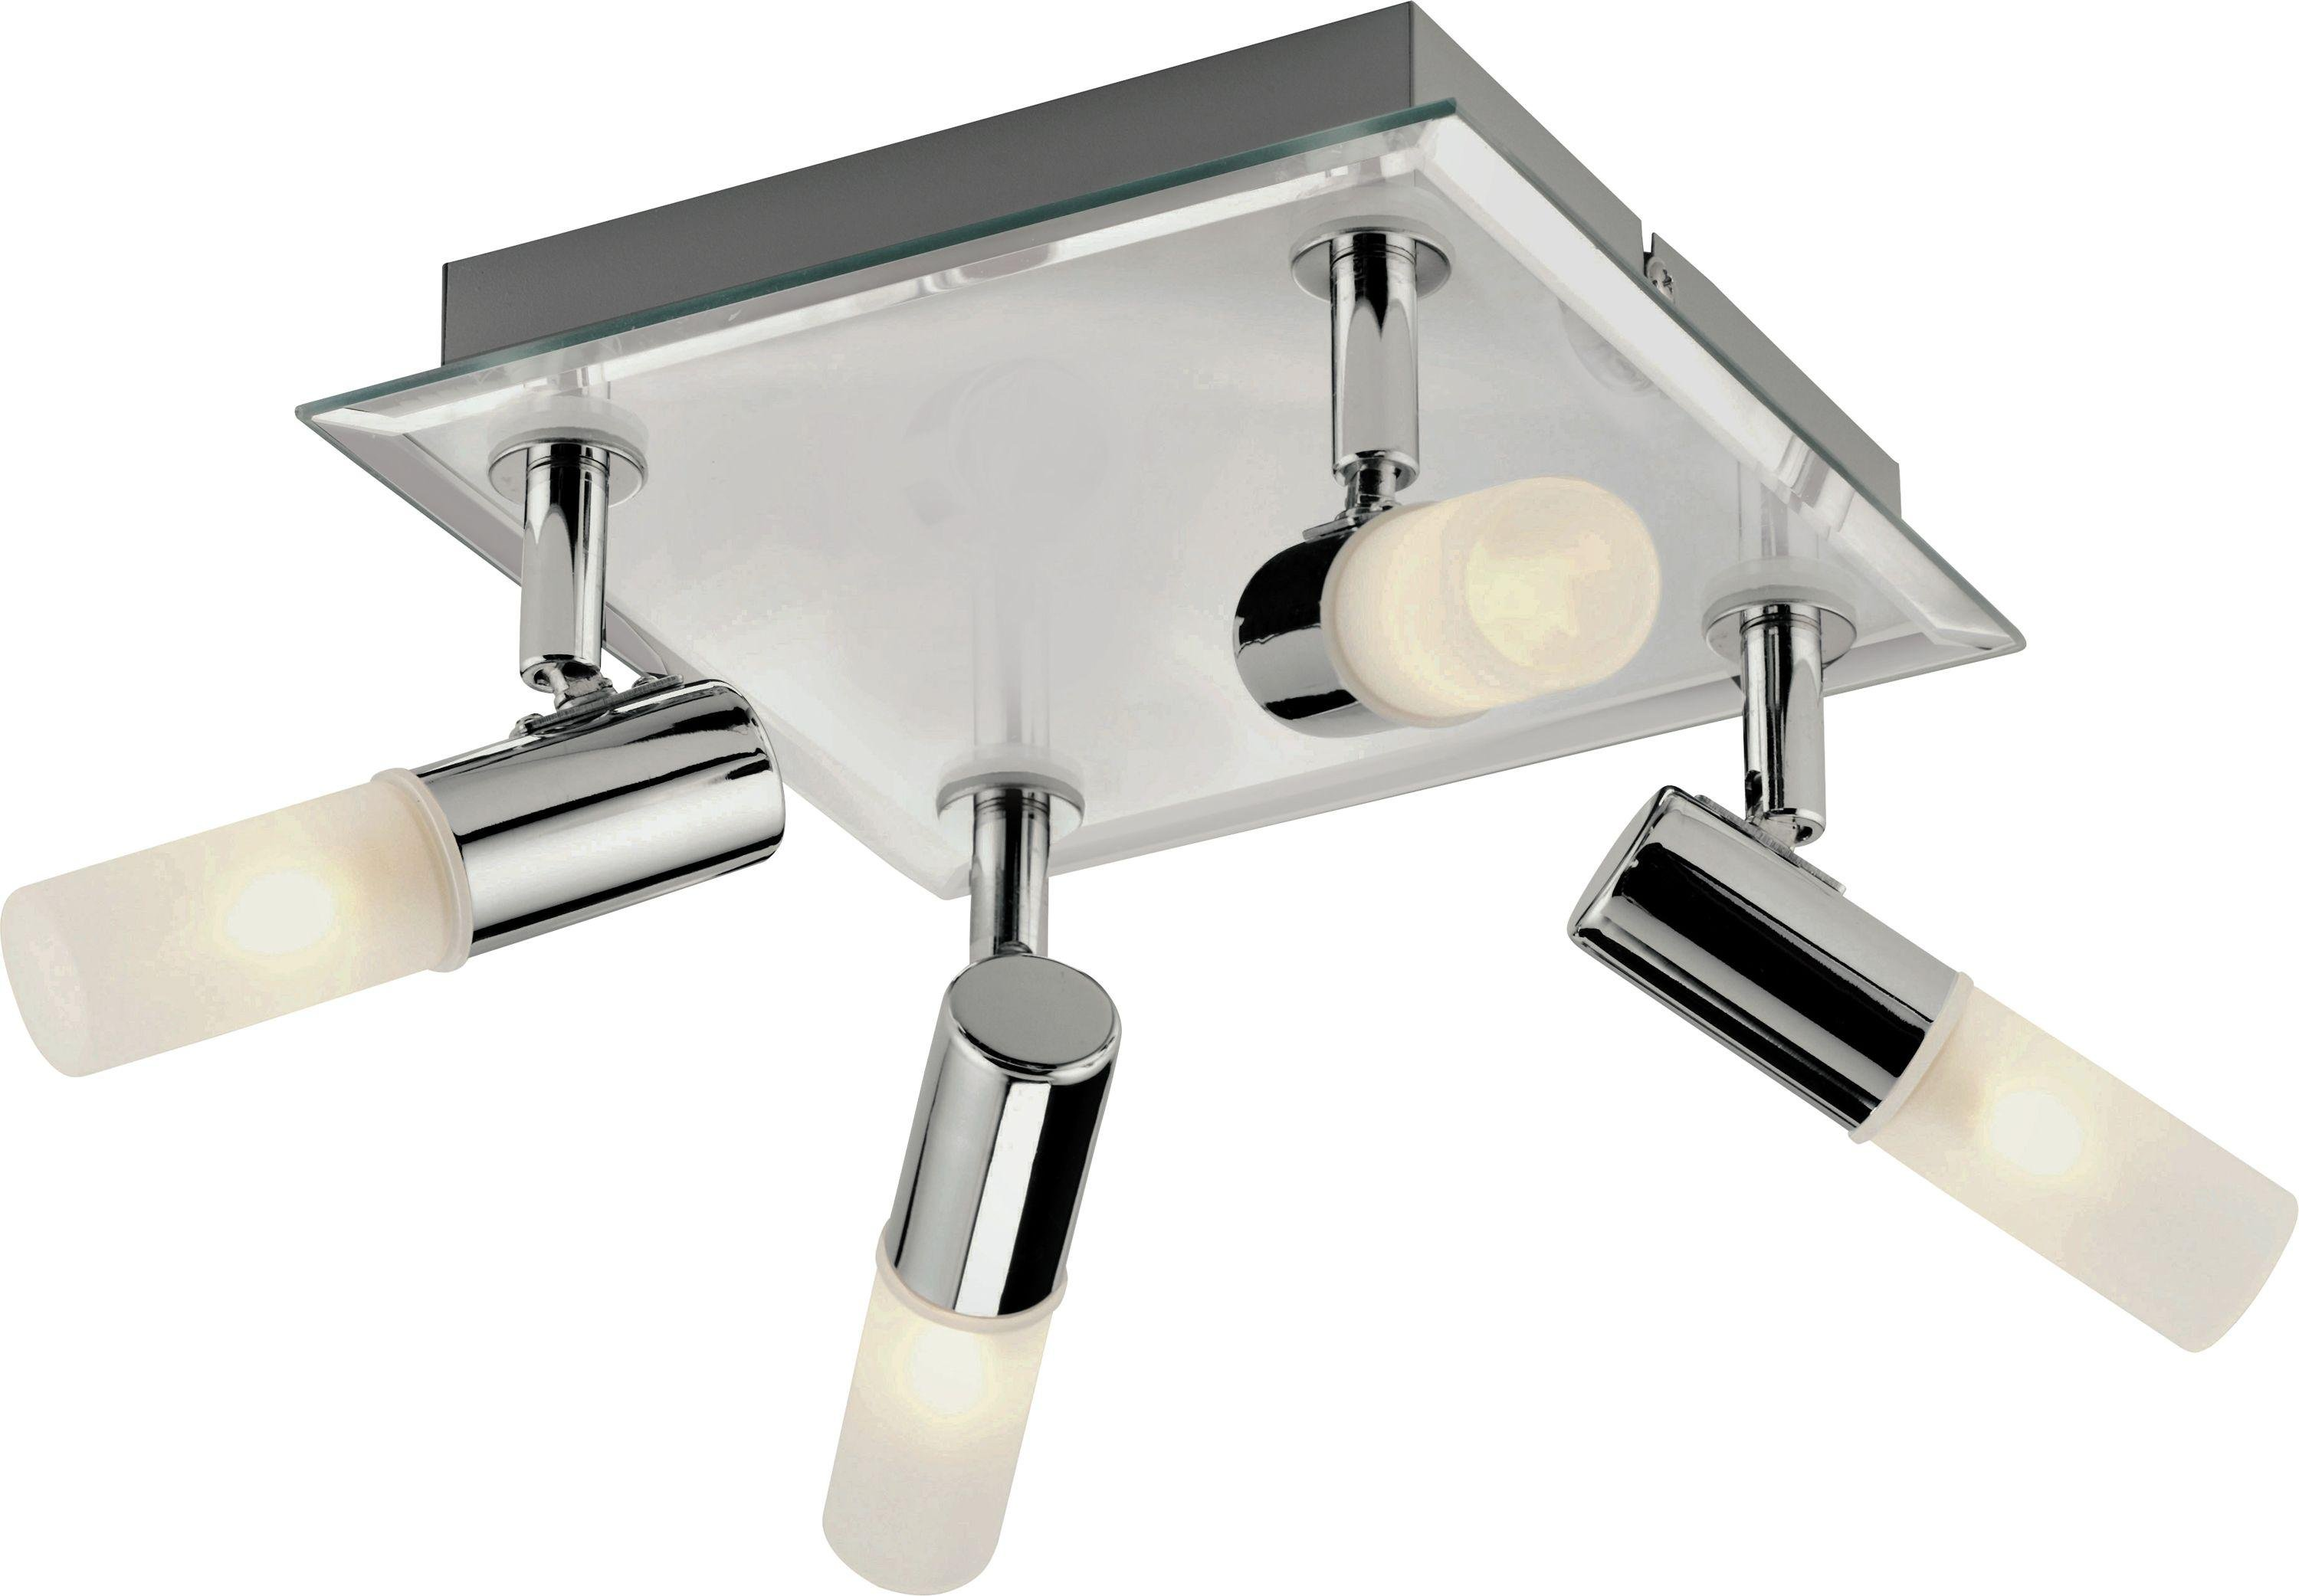 Bathroom Lights Square buy collection milano 4 light square bathroom spotlight - chrome